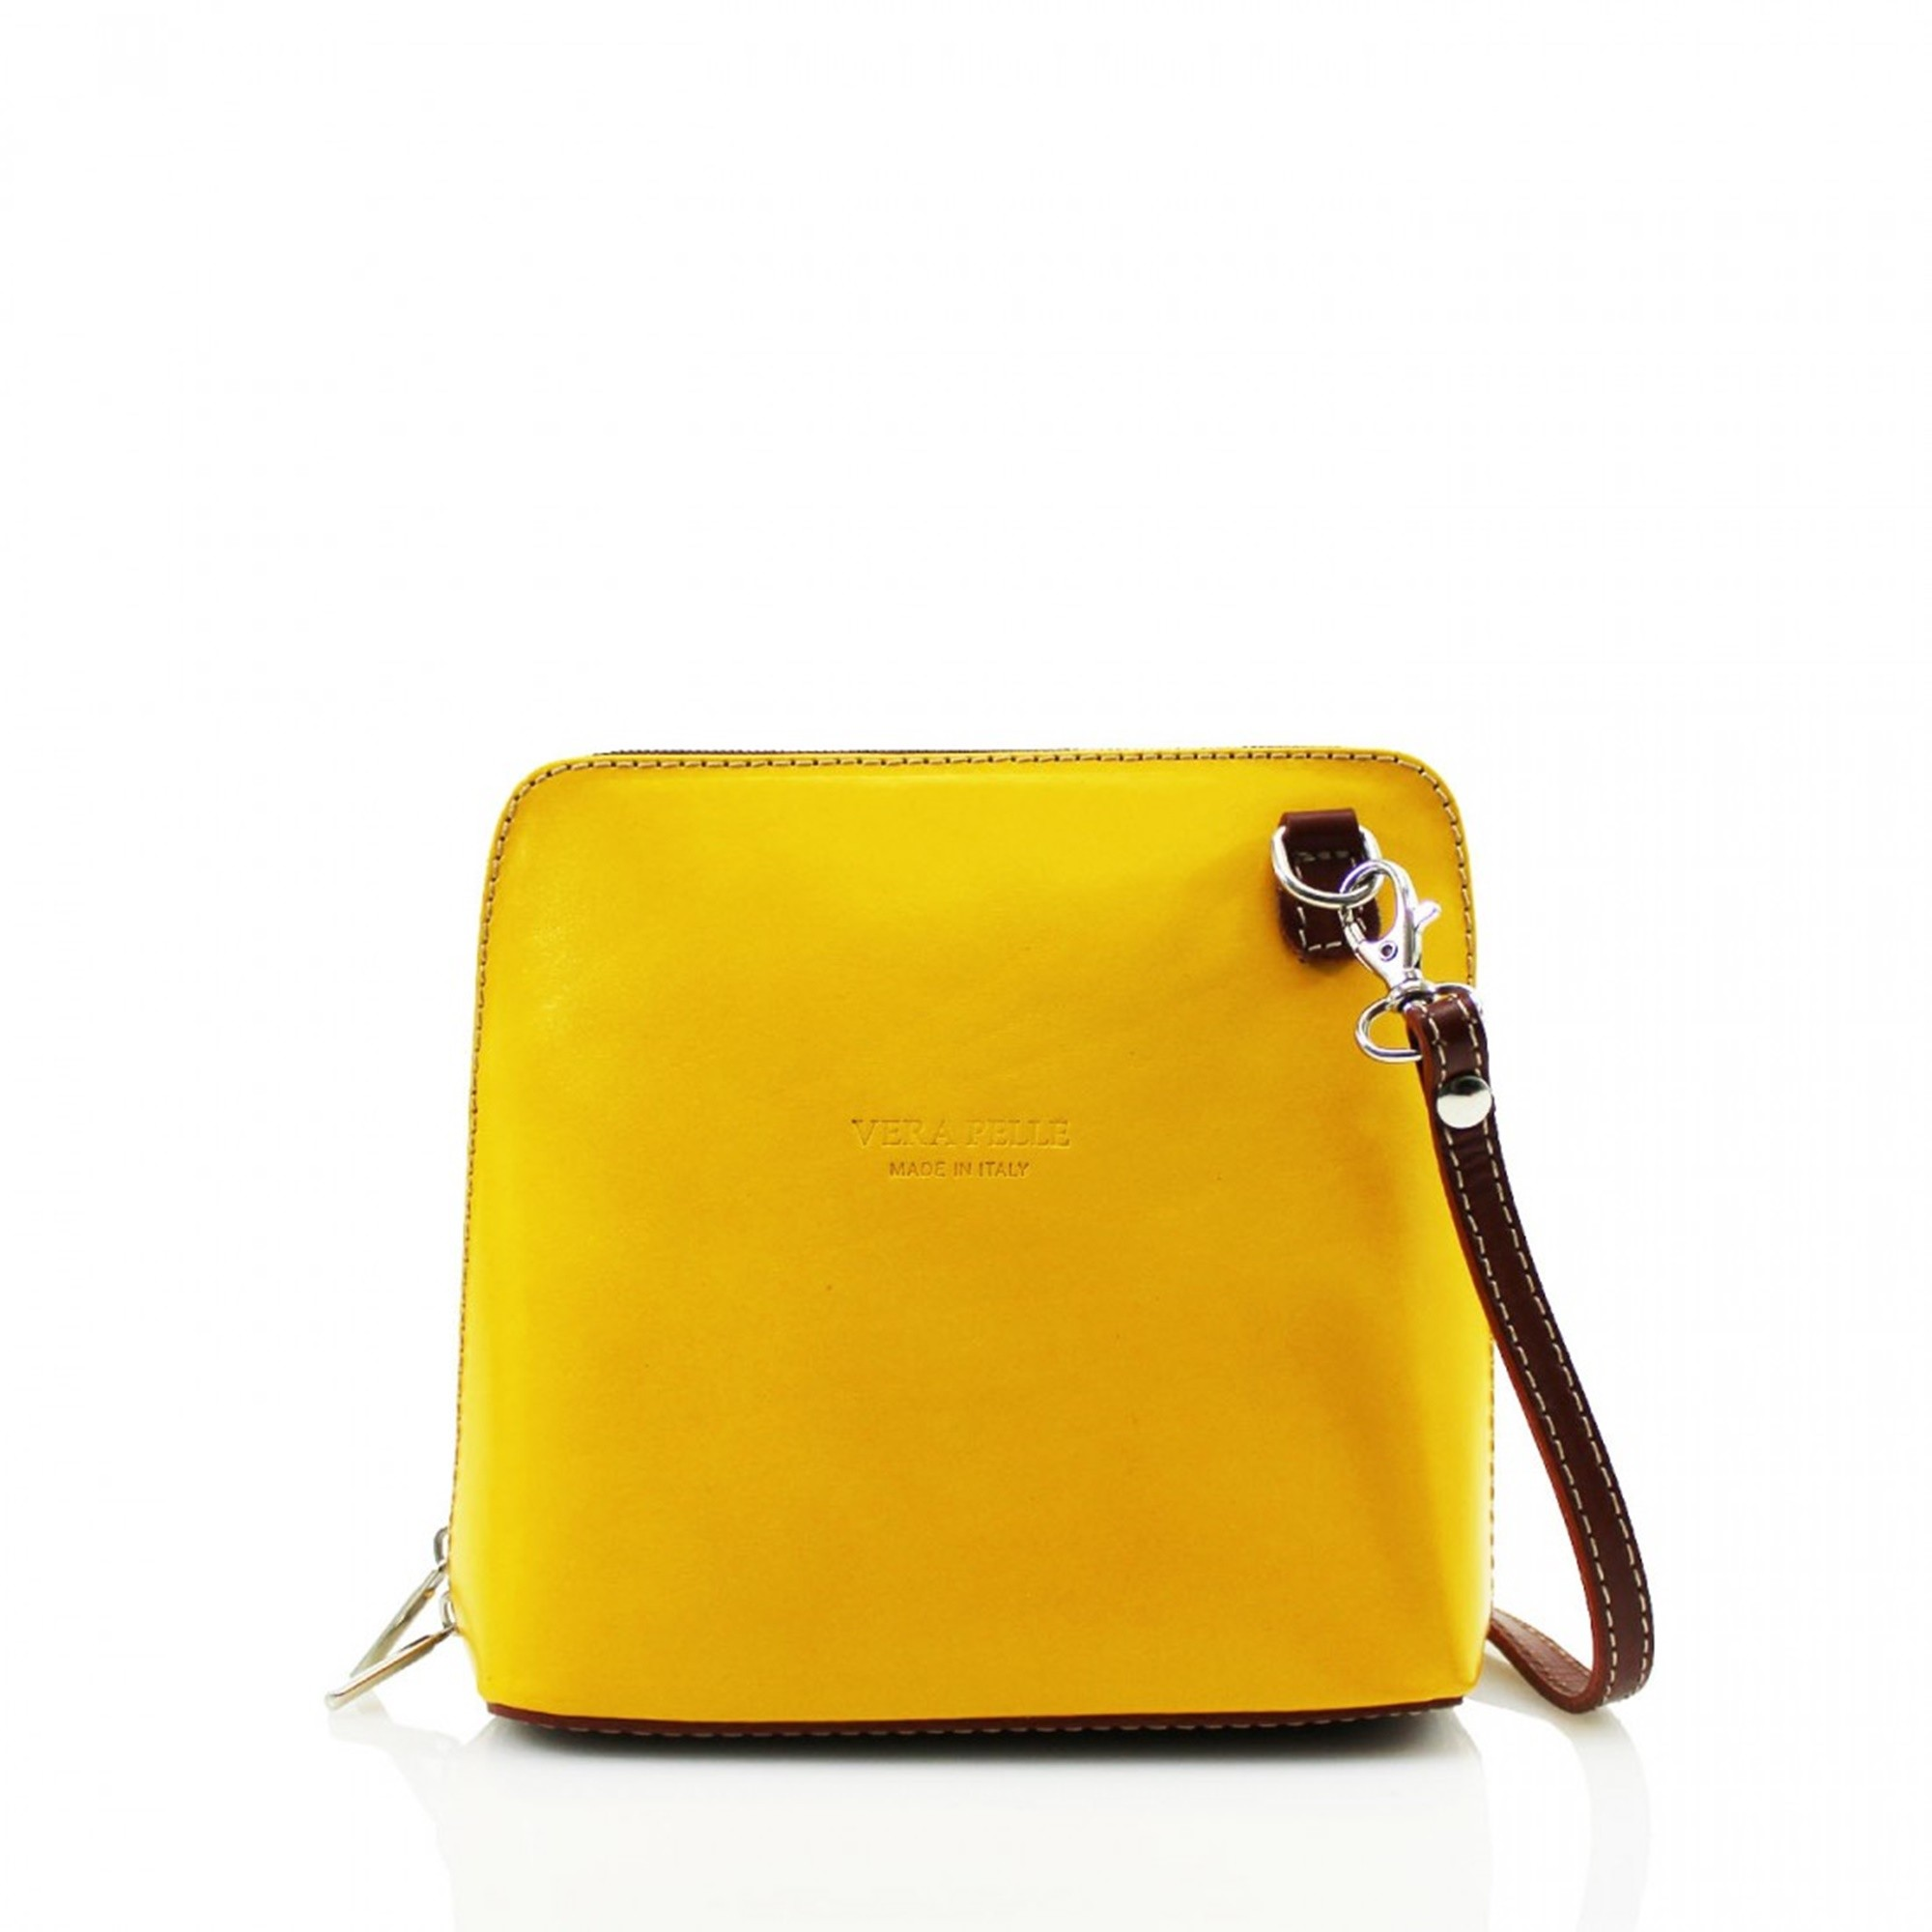 Yellow bag photo